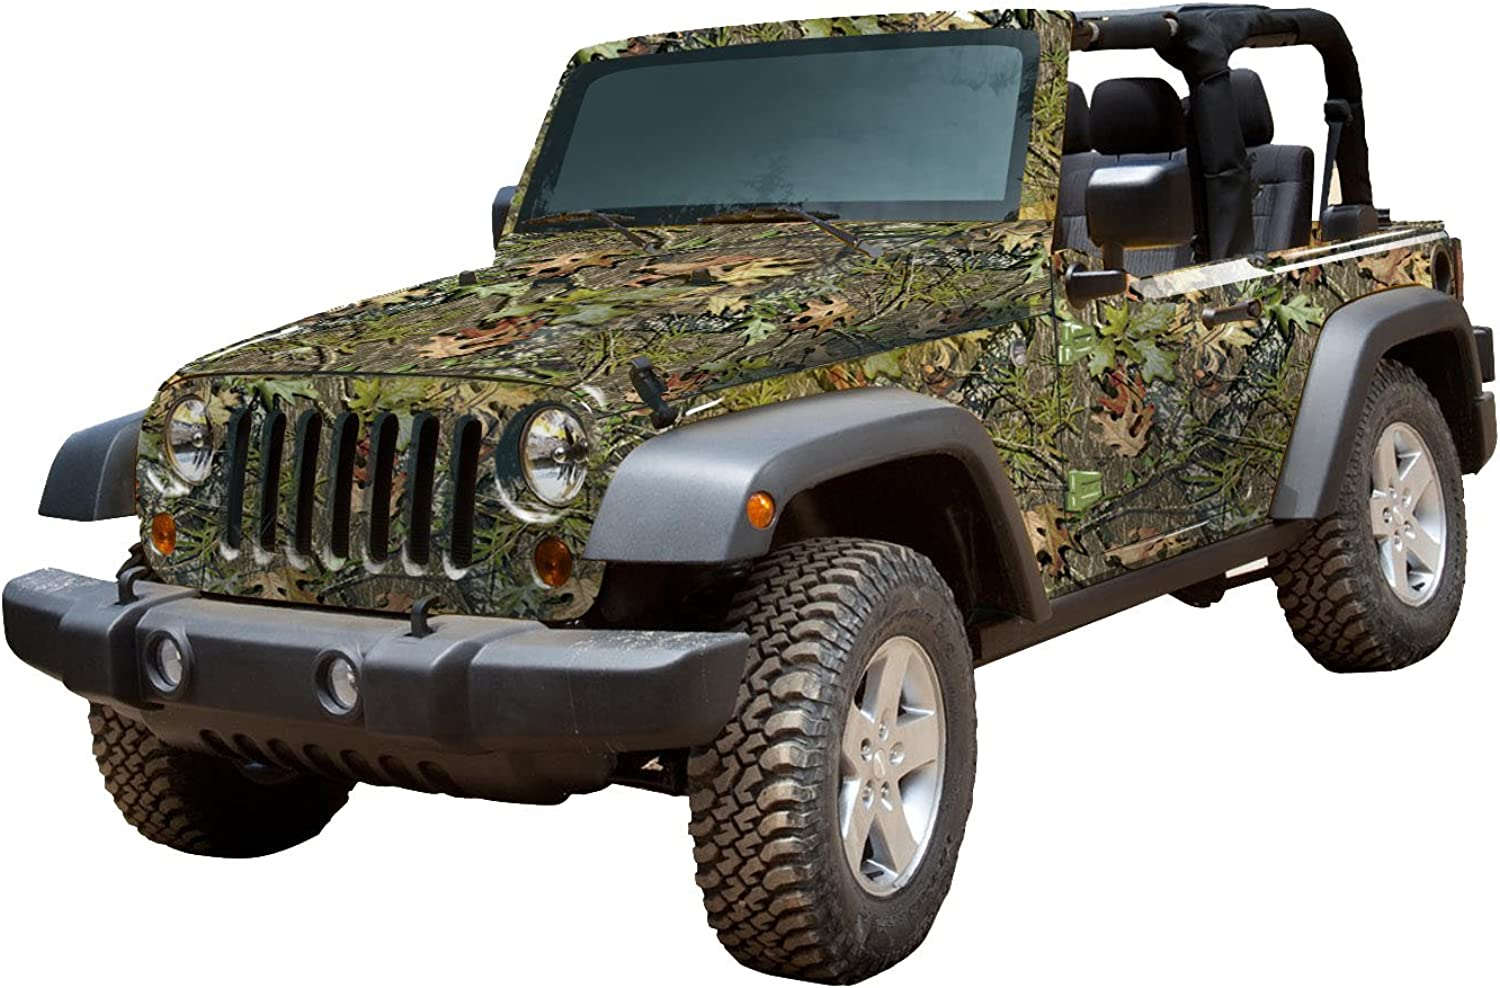 Mossy Oak Graphics 10002J2OB Obsession Full Vehicle Camouflage Kit for Jeep 2Door